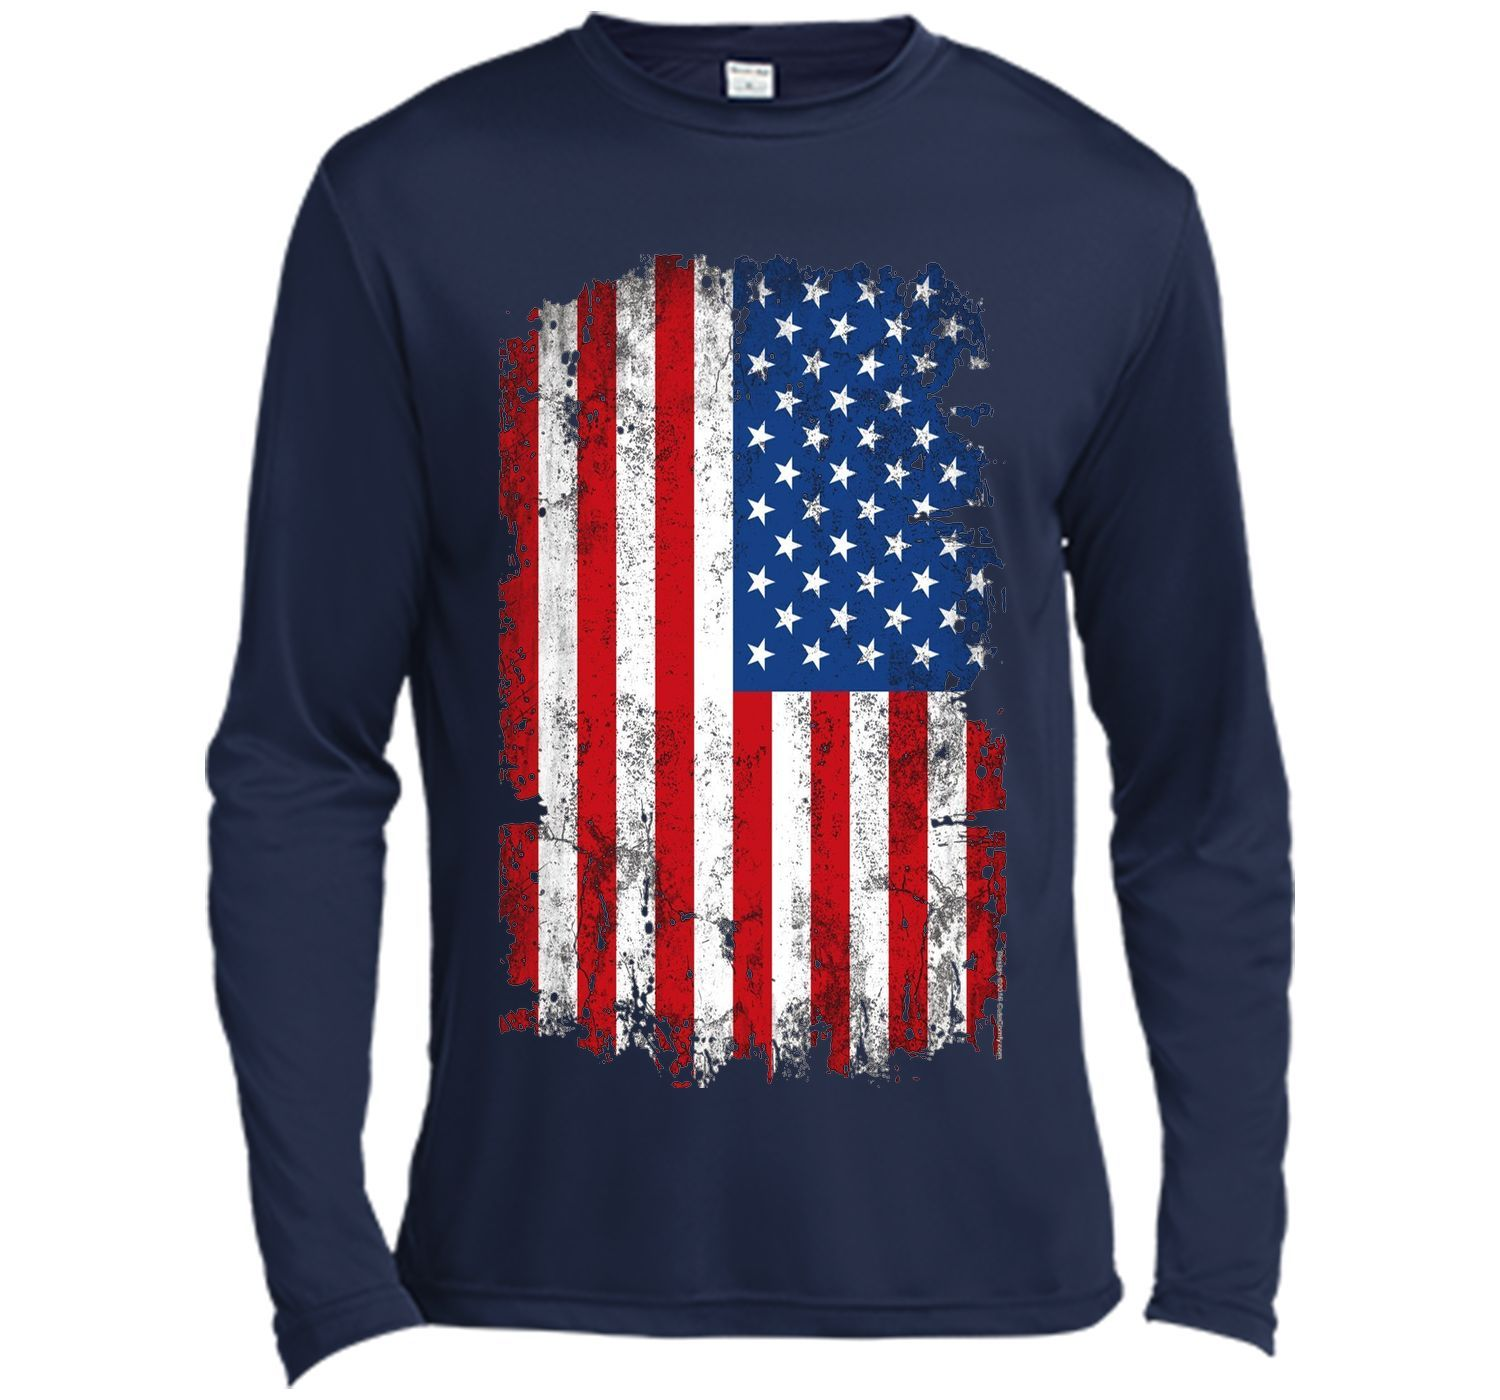 Vintage Patriotic American Flag 4th of July Family T-Shirt